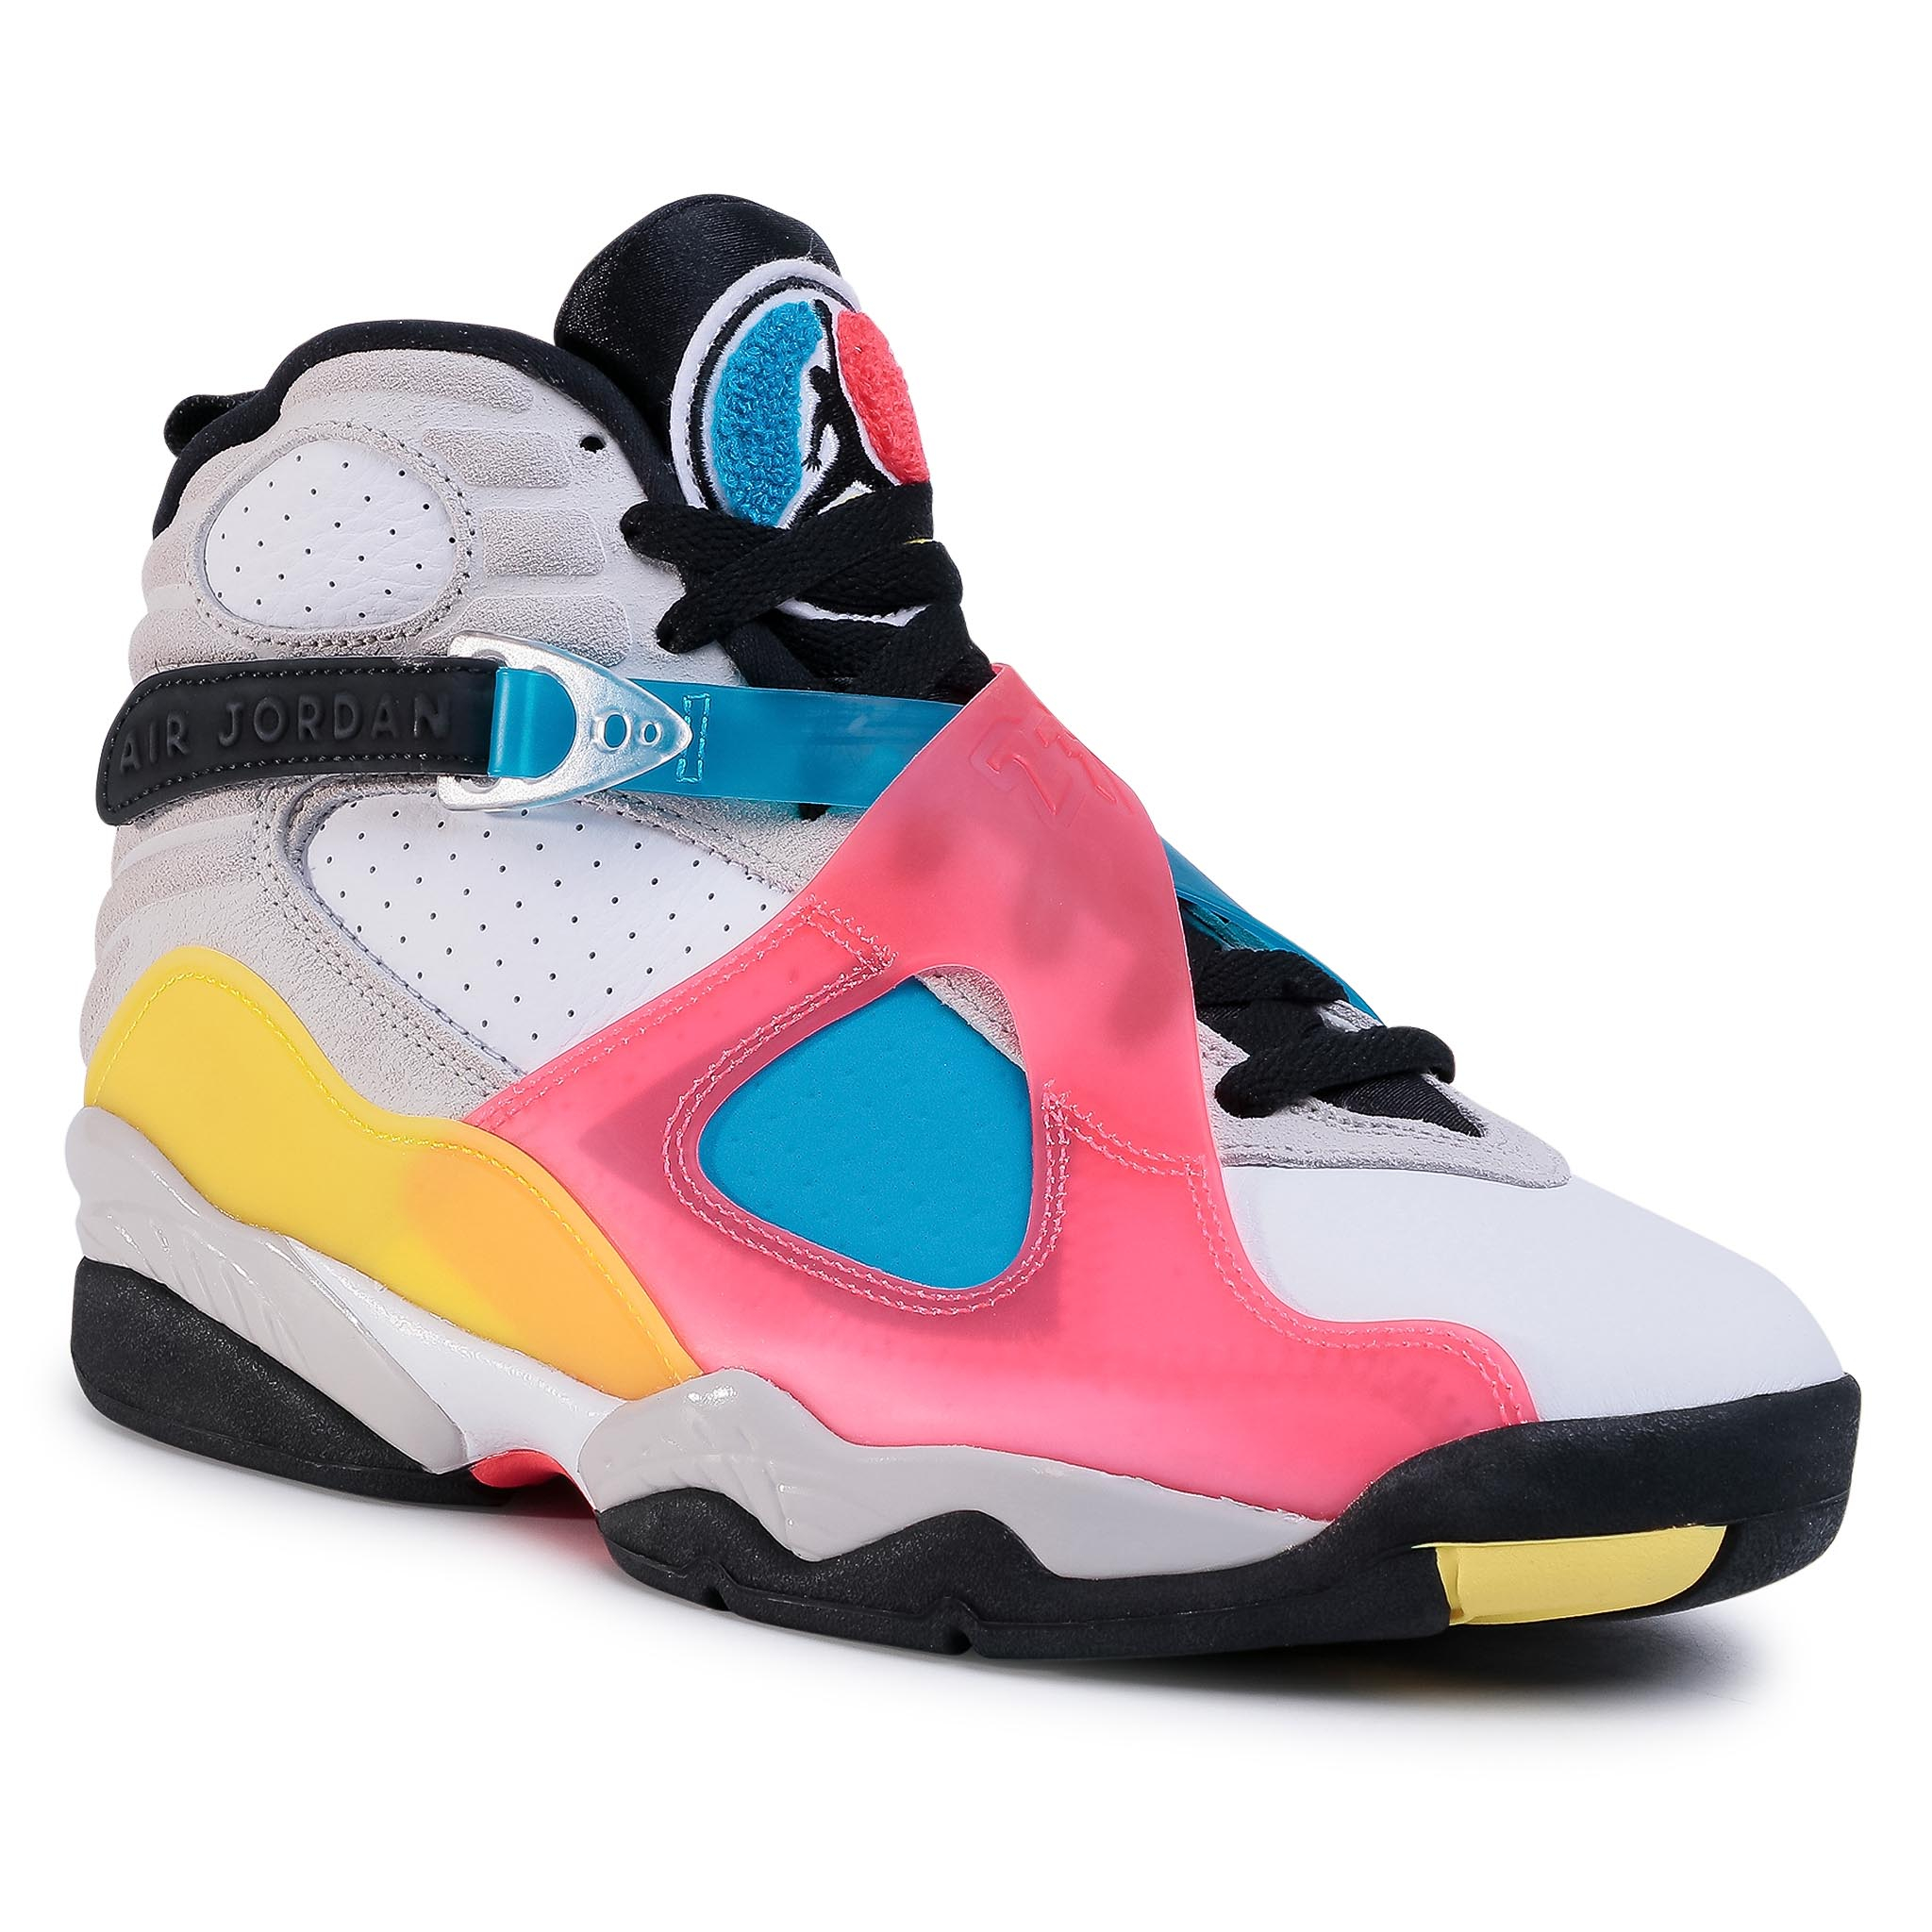 Pantofi Nike - Air Jordan 8 Retro Se Bq7666 100 White/Black/Red Orbit imagine